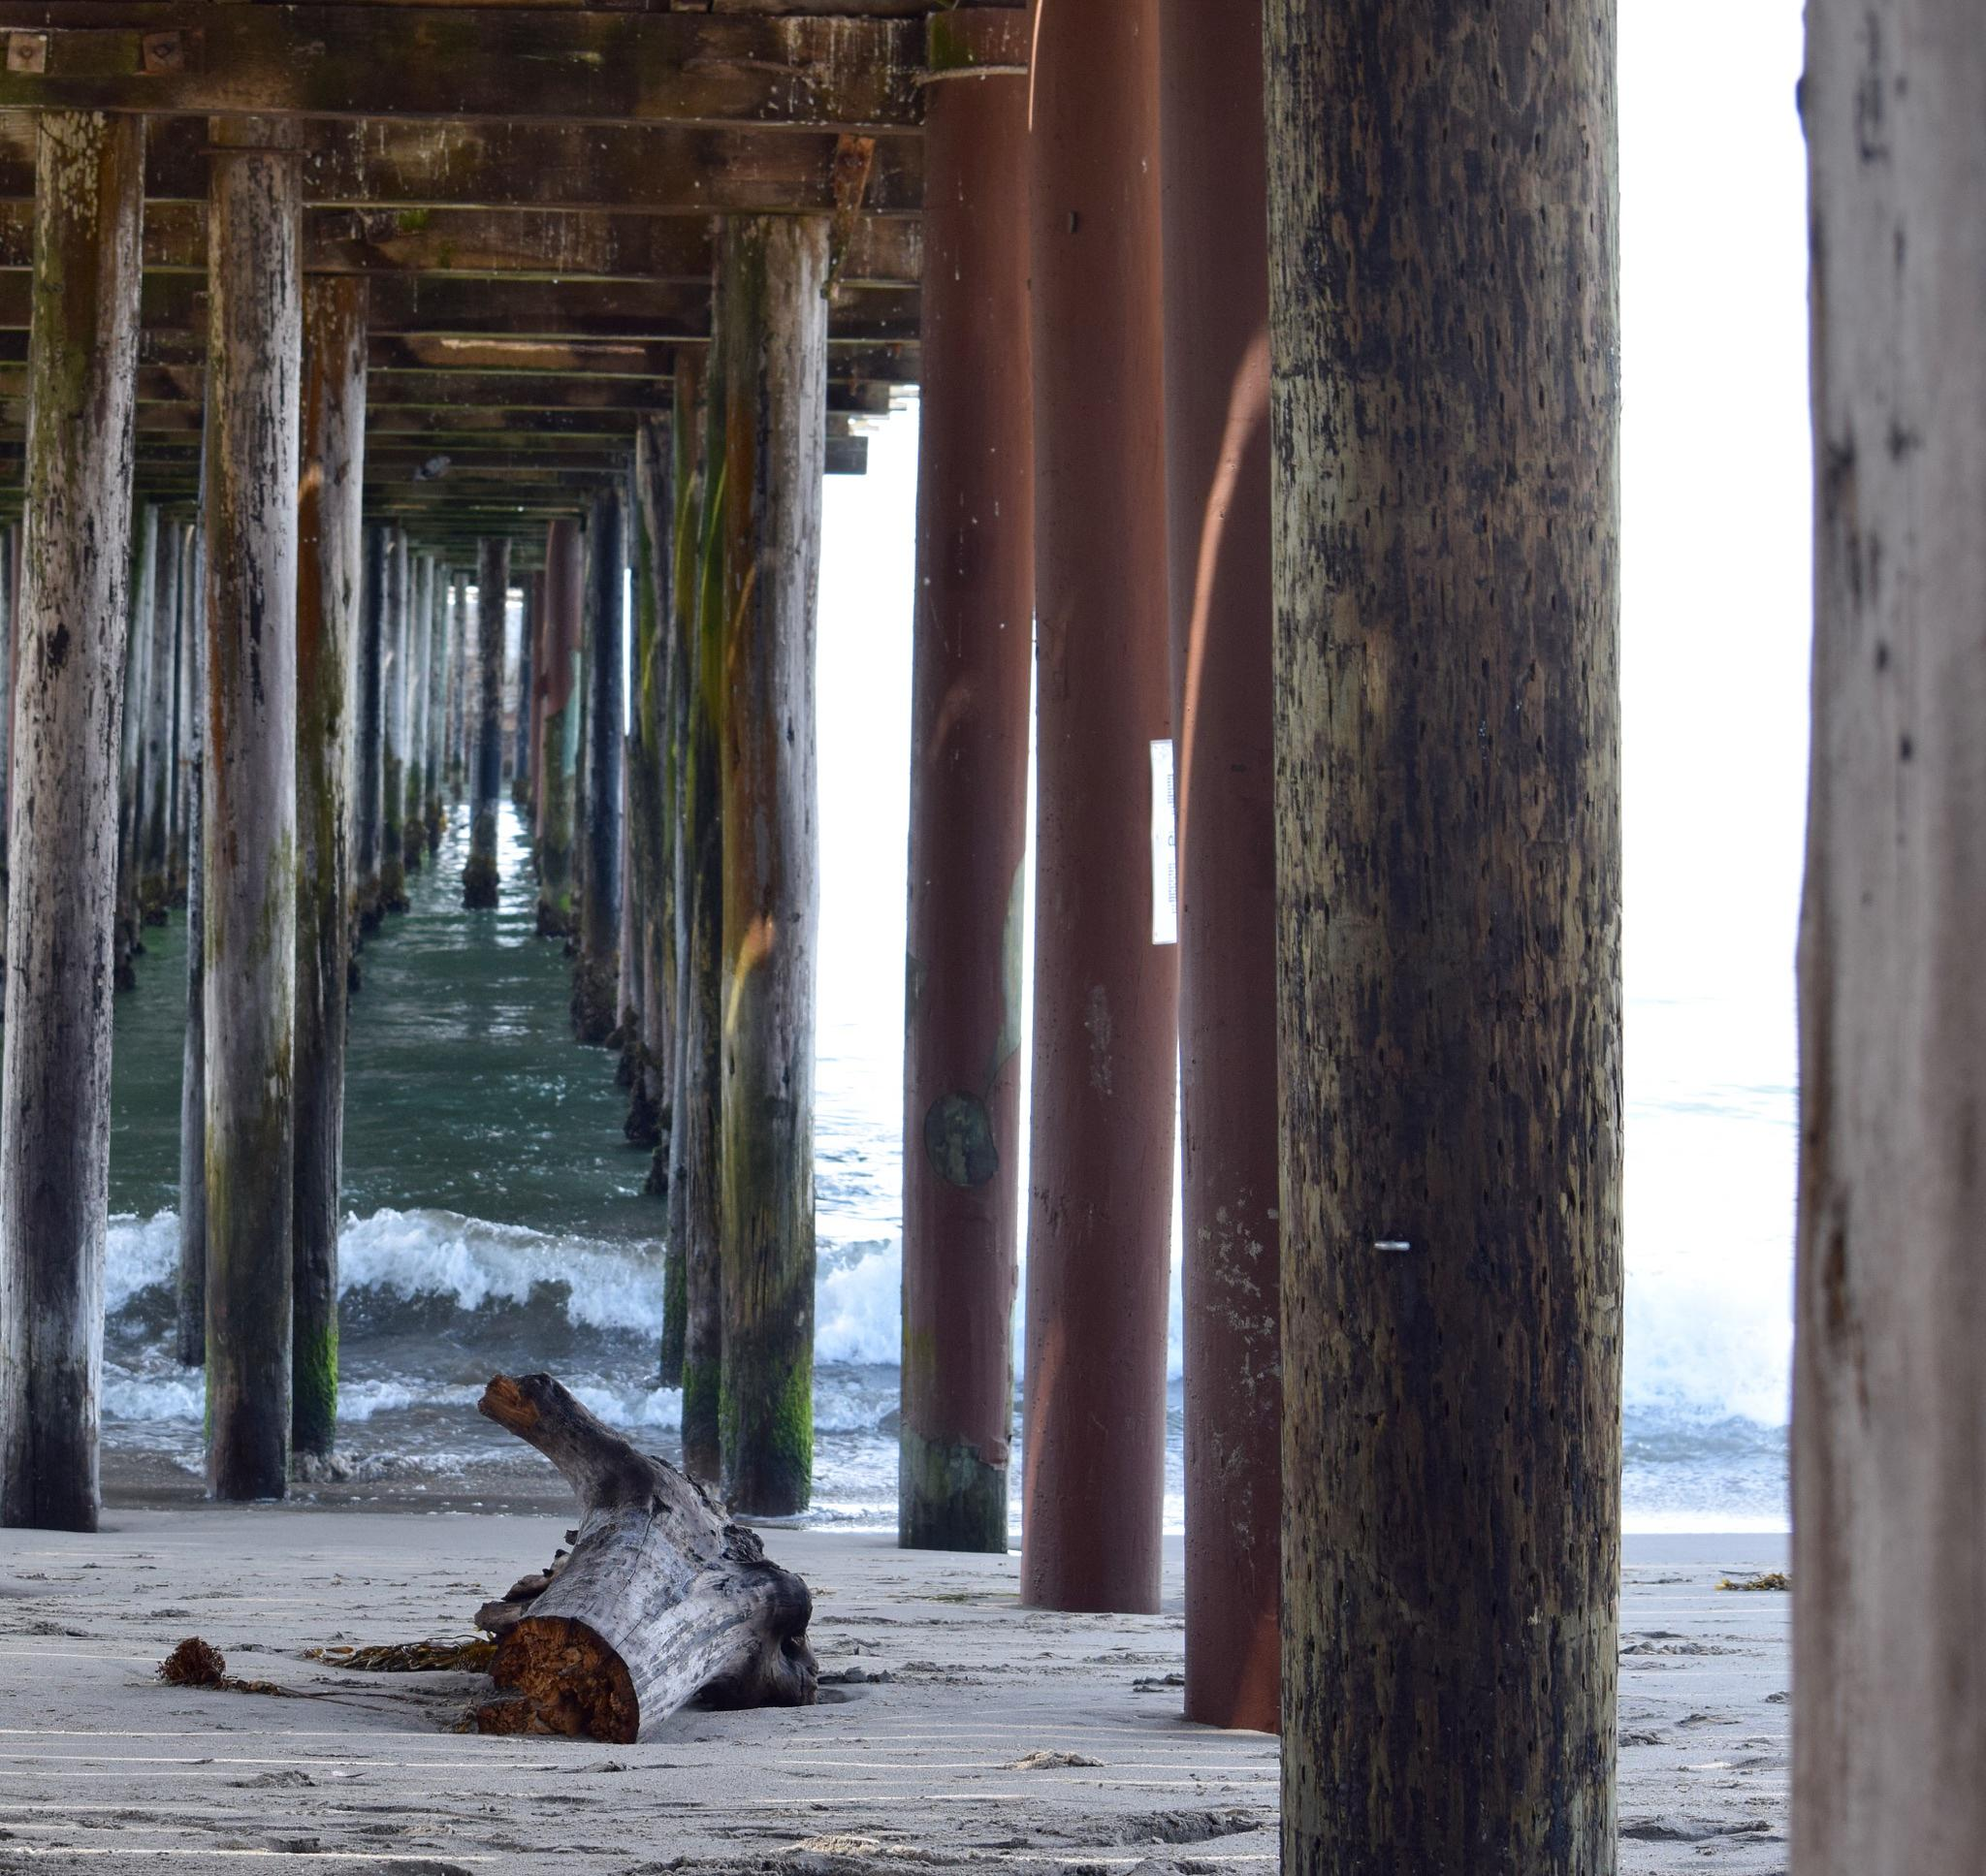 Pier-vision  by CandaceManning